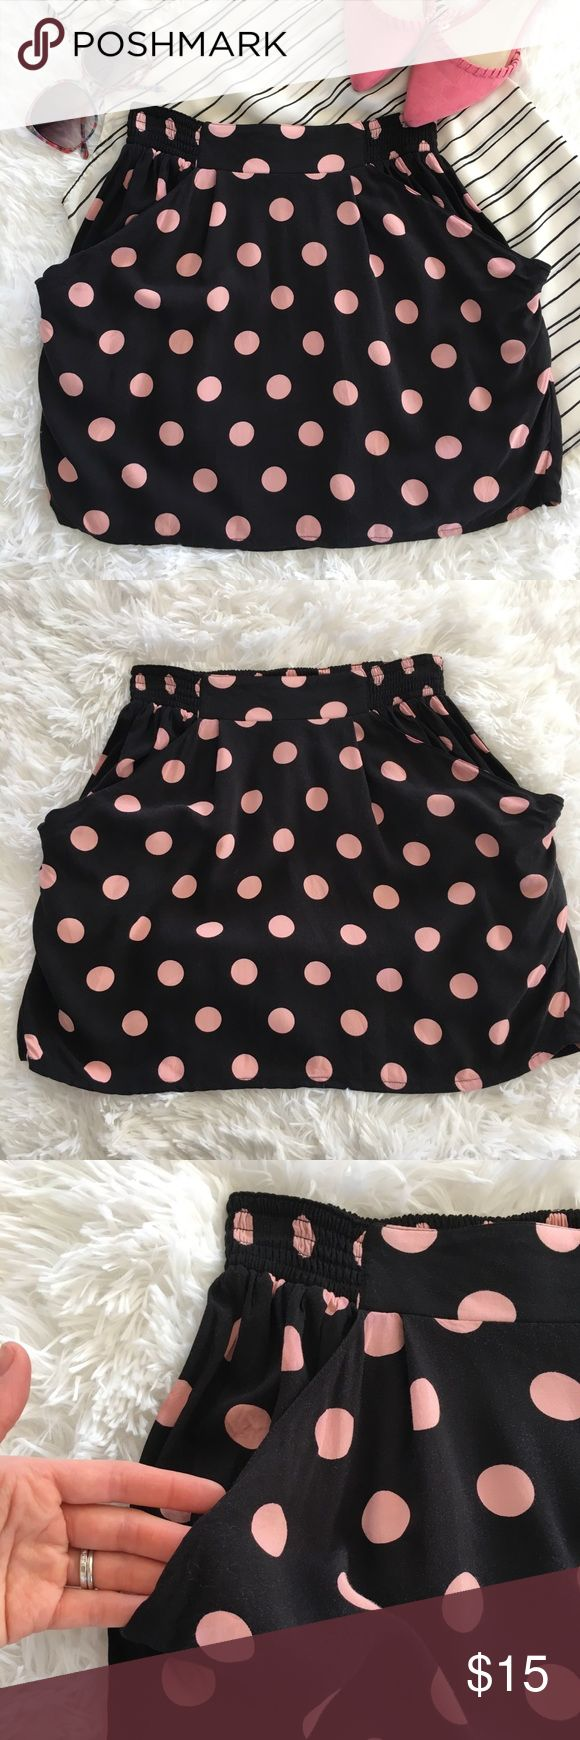 "H&M Divided skirt with pockets This black H&M Divided skirt features pink polka dots, wide elastic waistband, and pockets. It's super comfy and easy to wear, in excellent used condition.   Feel free to ask me any questions, make an offer, or bundle for greater discount! 😘   Width: 12.5"" Length: 15.5"" H&M Skirts Mini"